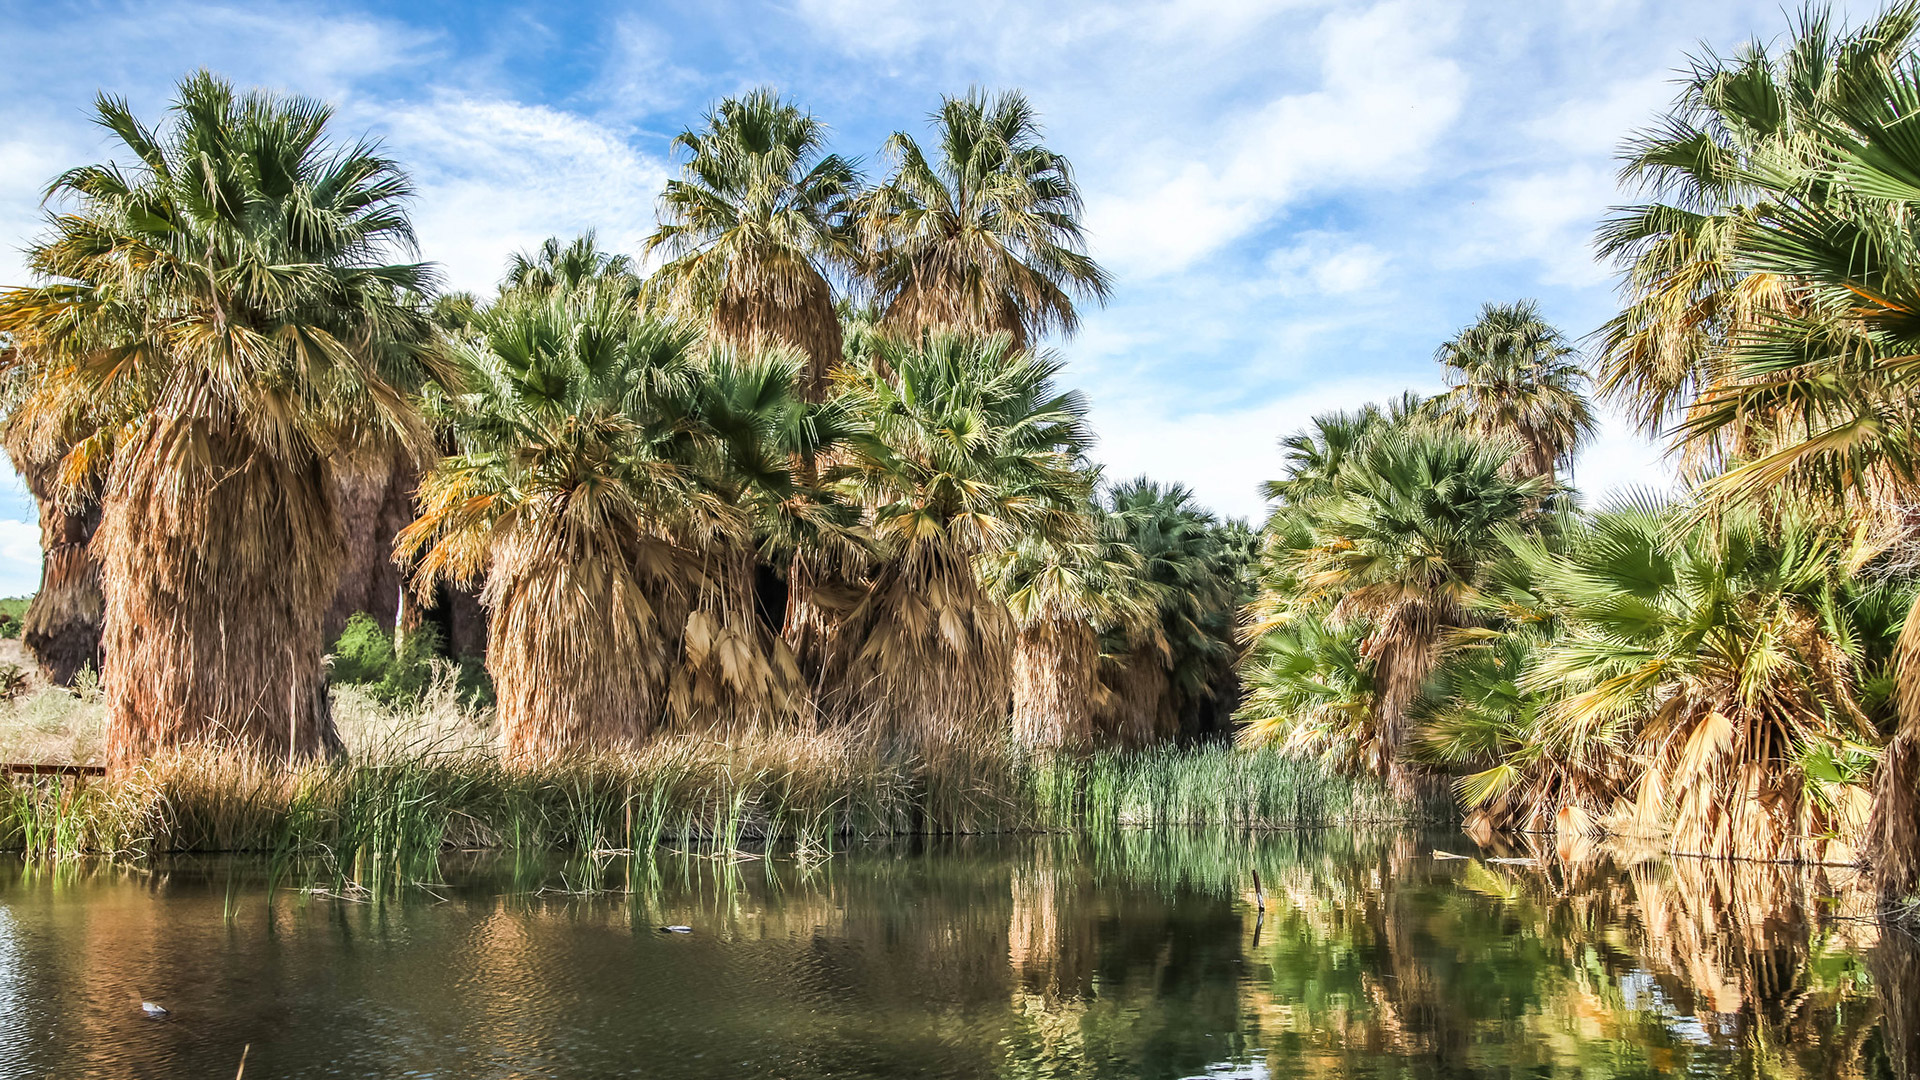 Palm trees surrounding water at Thousand Palms Oasis